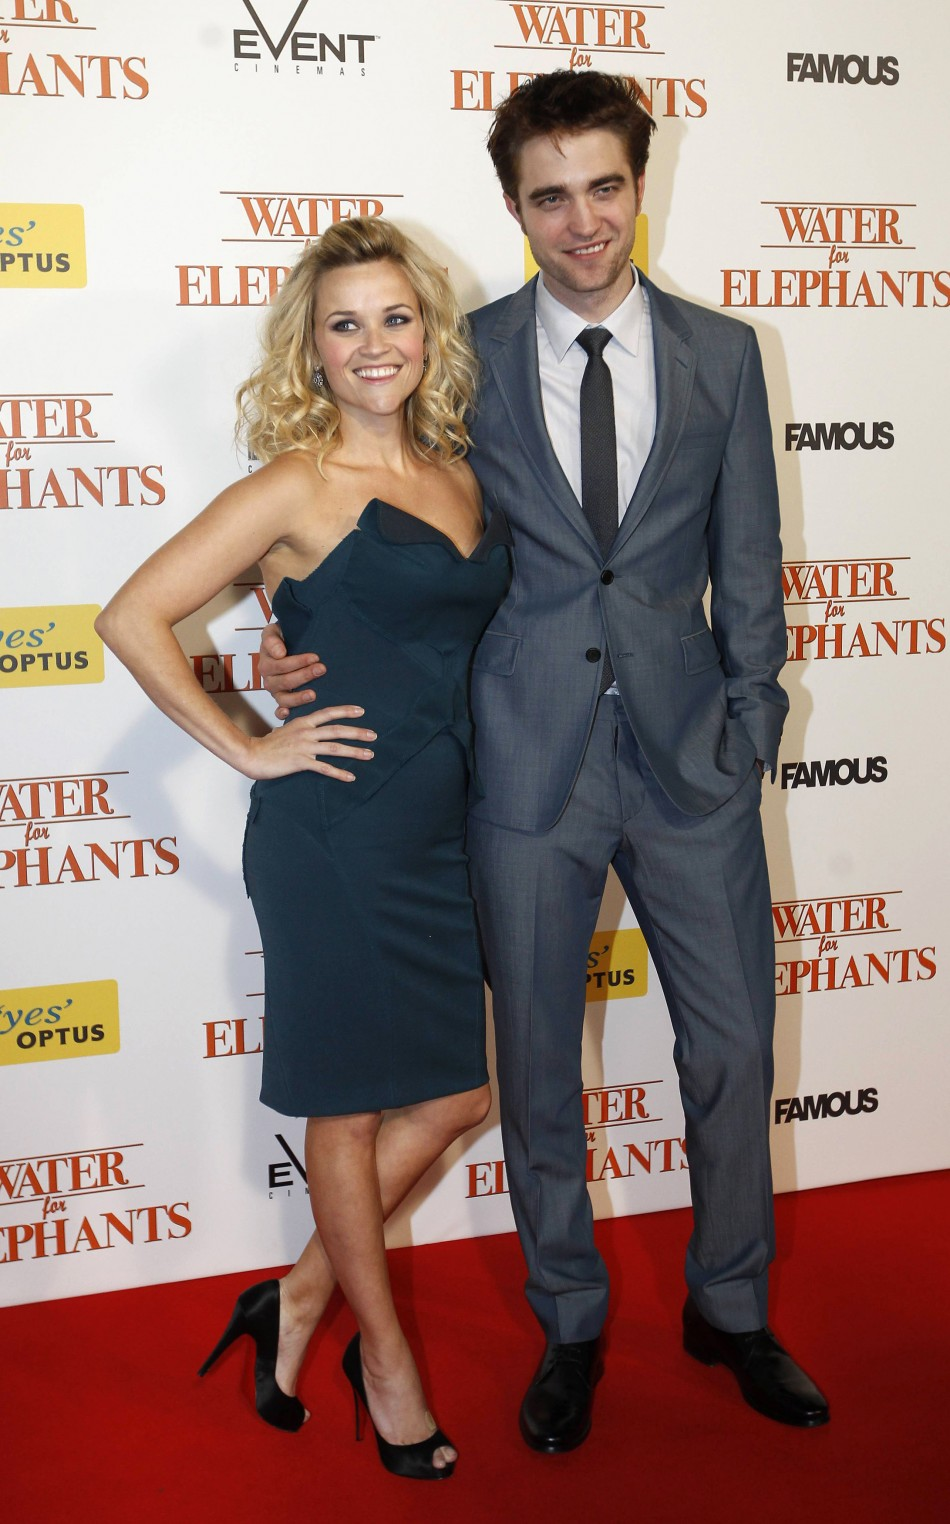 Reese Witherspoon and Robert Pattinson - £37.1m